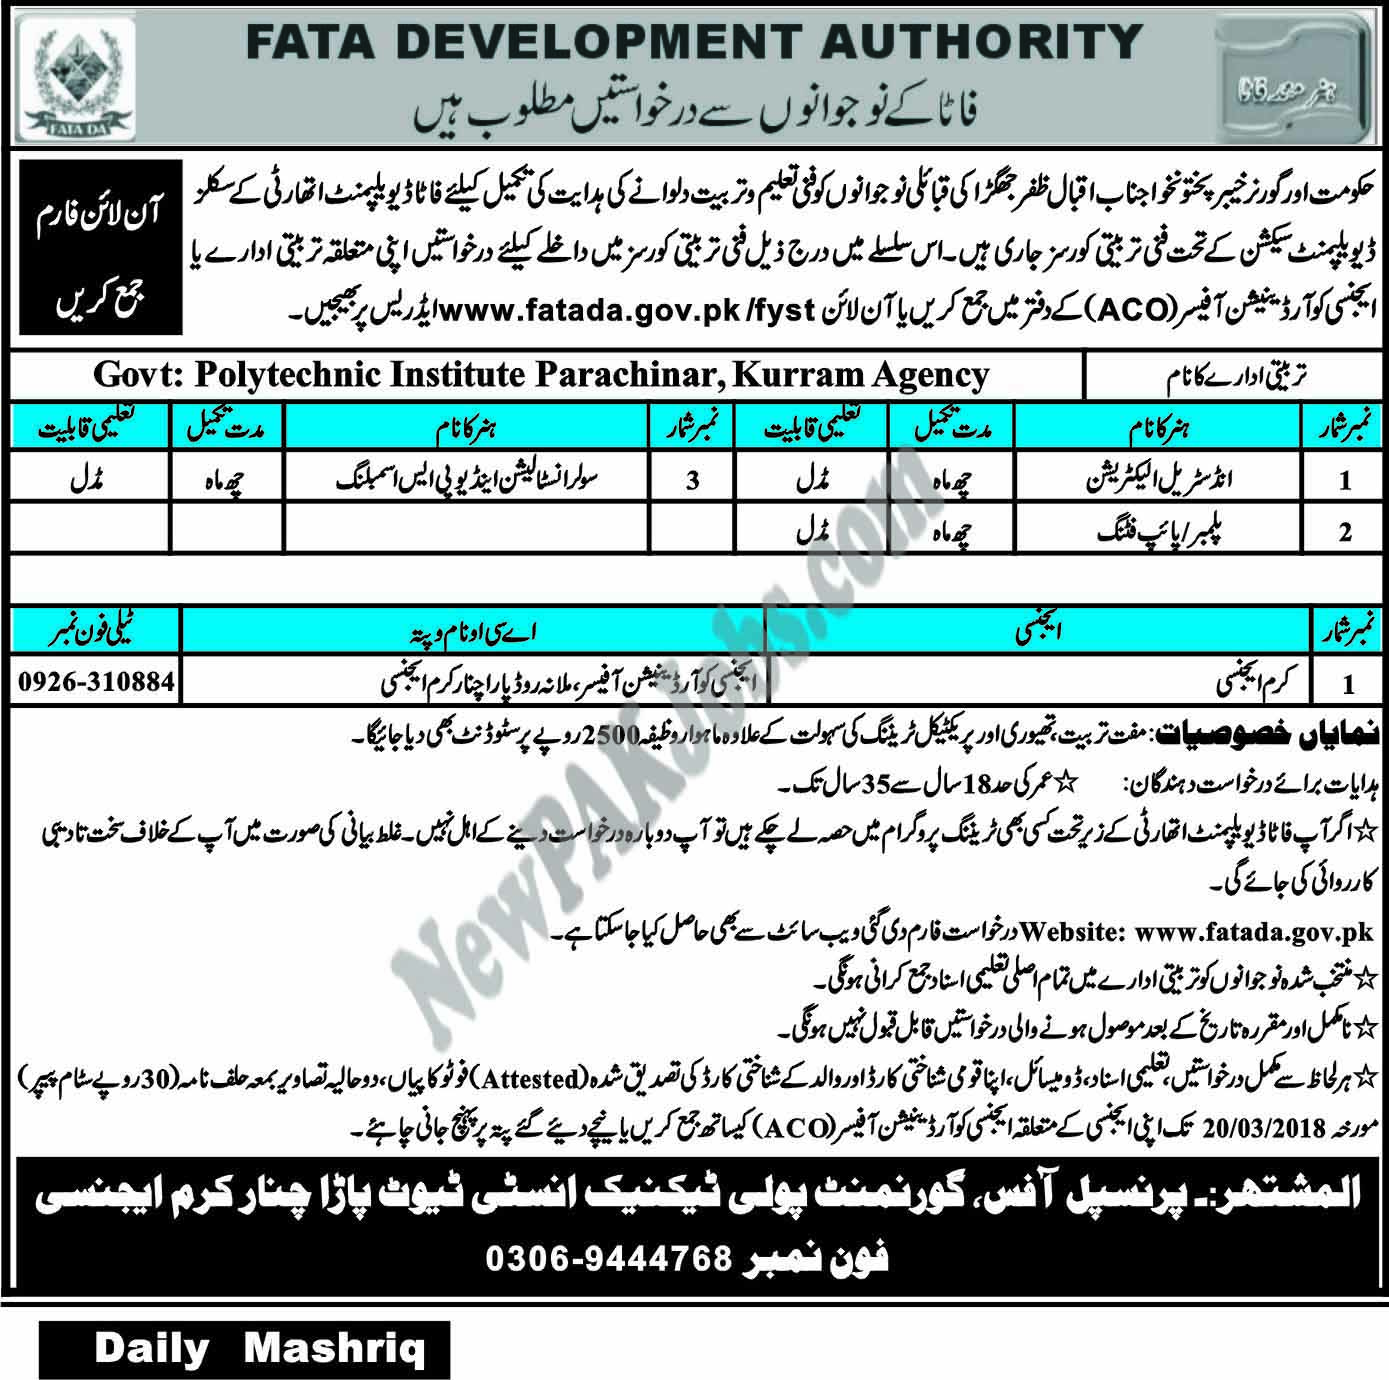 FATA Development Authority, Govt Polytechnic Institute Parachinar, Kurram Agency